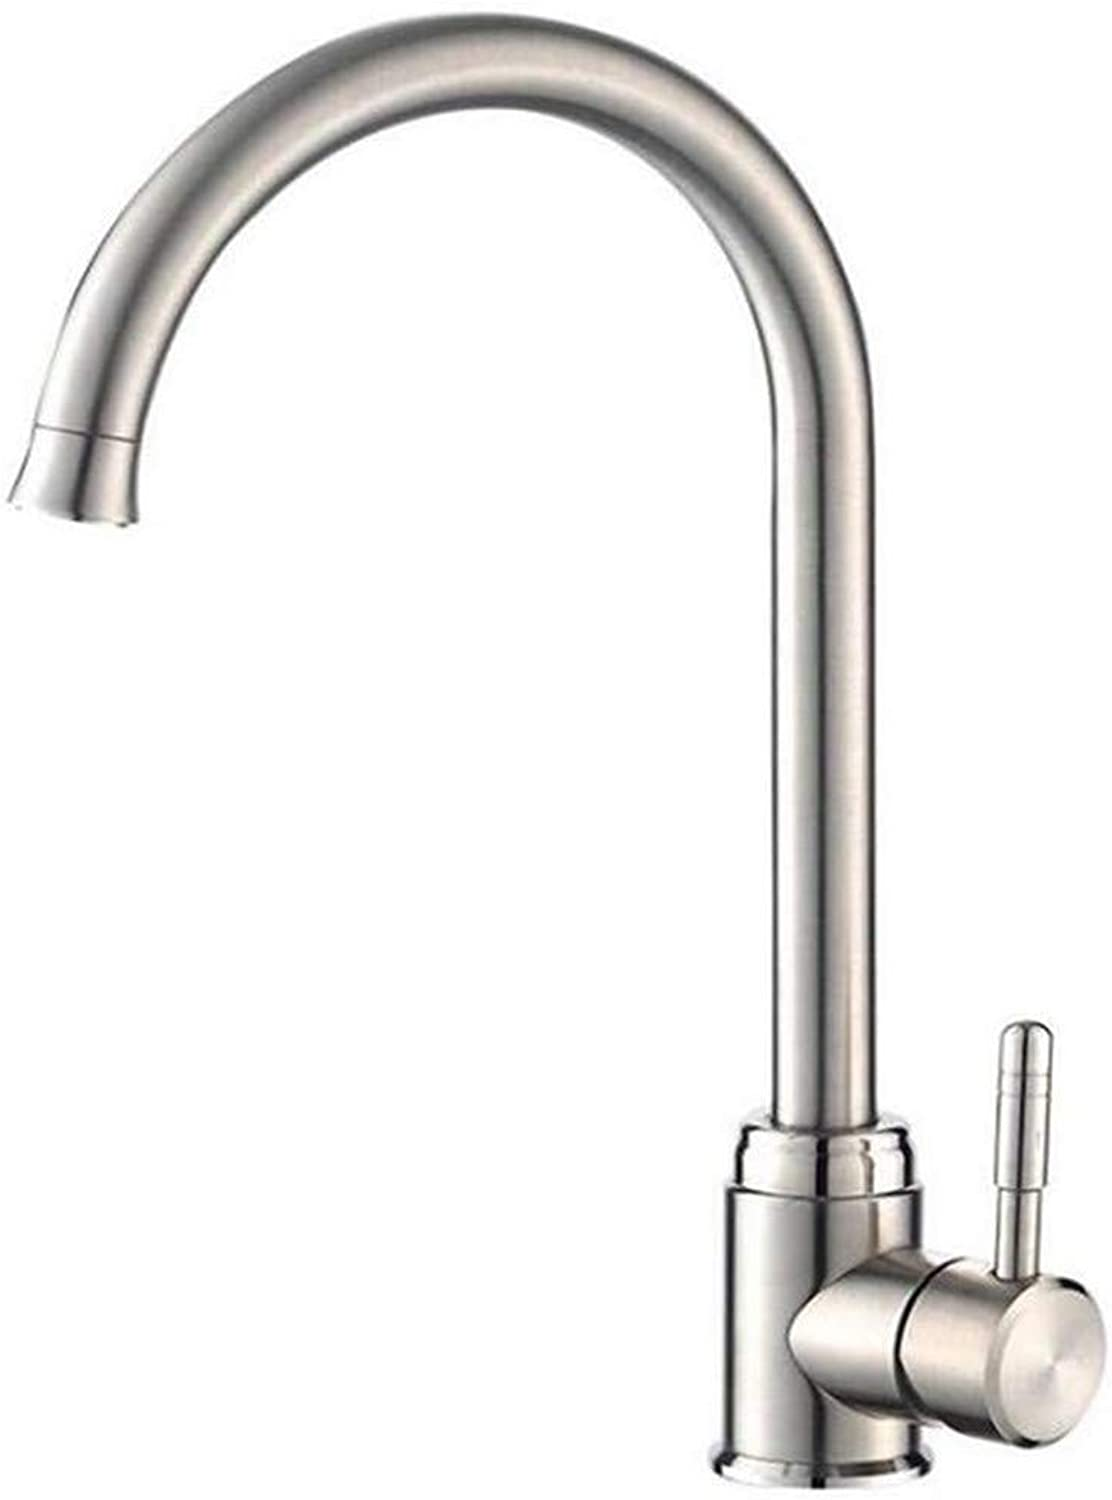 Kitchen Bath Basin Sink Bathroom Taps Taps Mixer Faucet Sink Stainless Steel Cold and Hot Basin Tap Ctzl0531